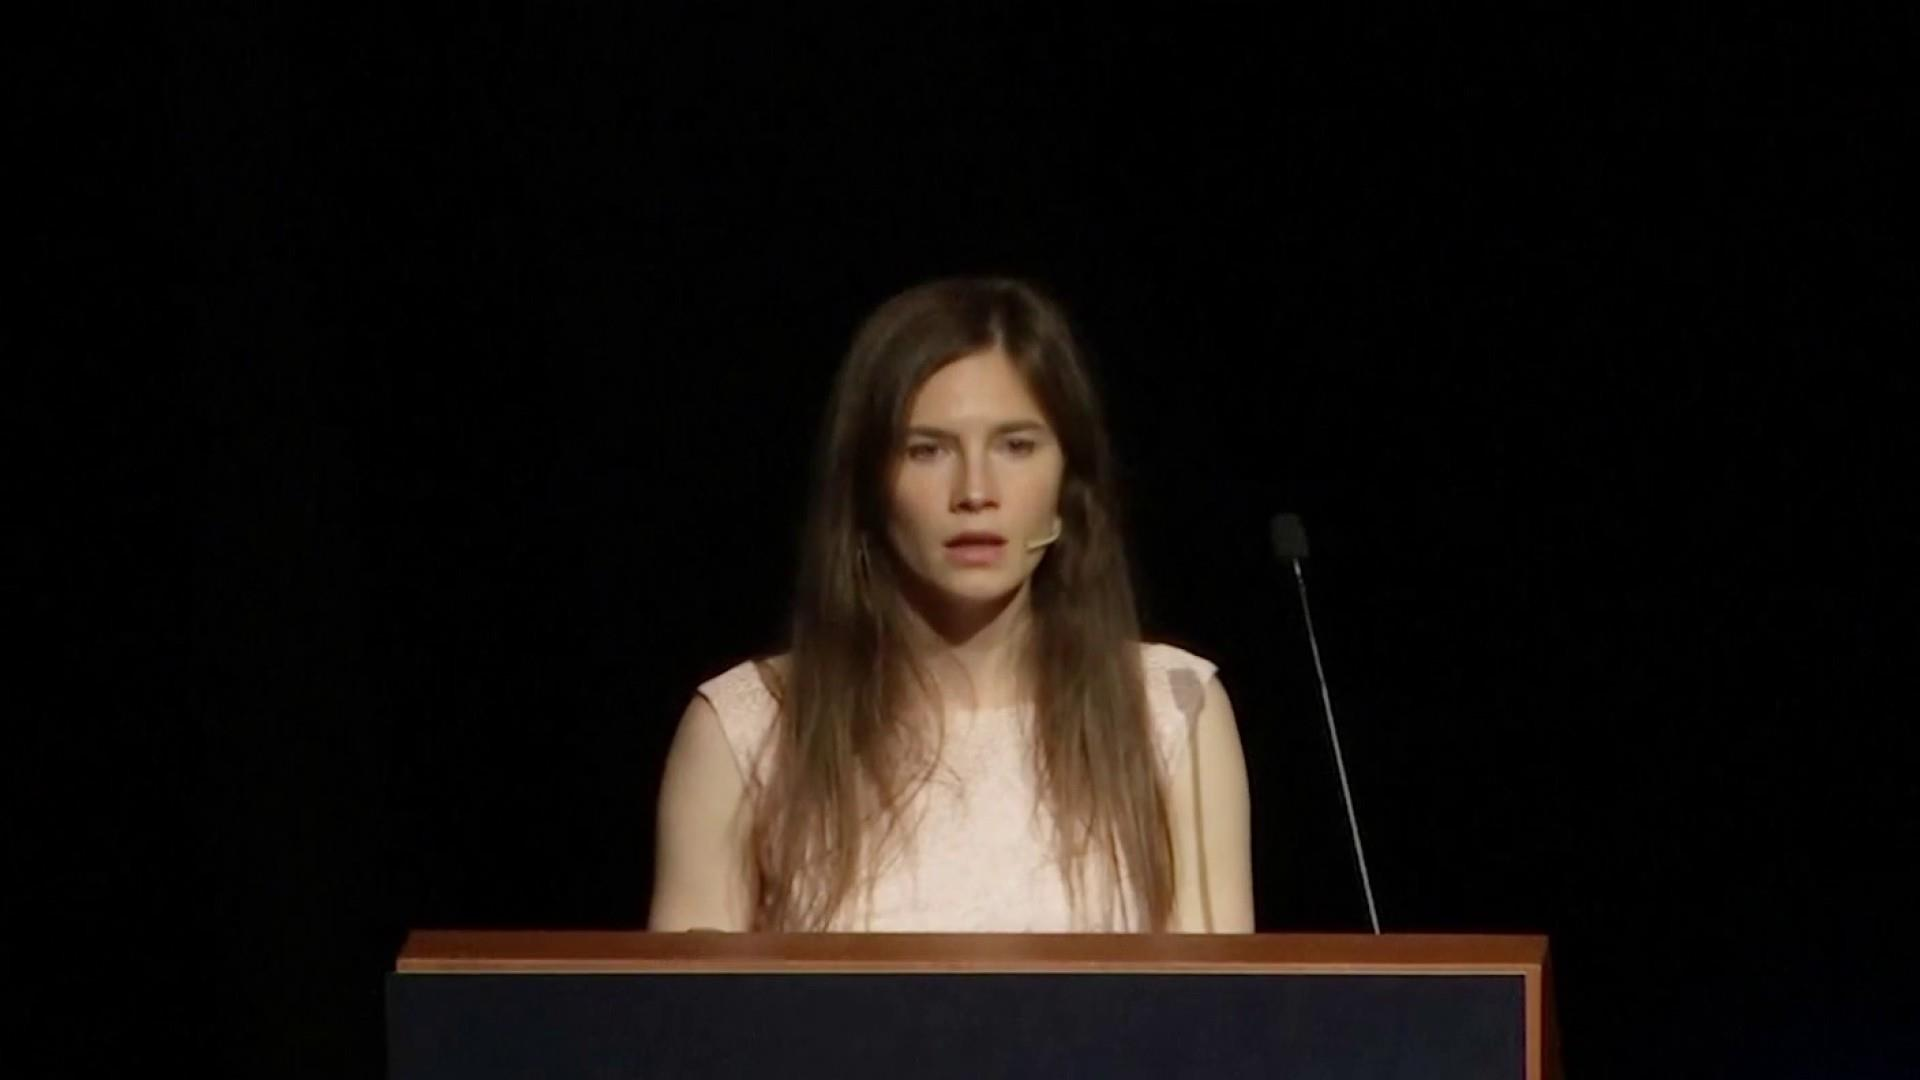 Emotional Amanda Knox speaks out after first return to Italy